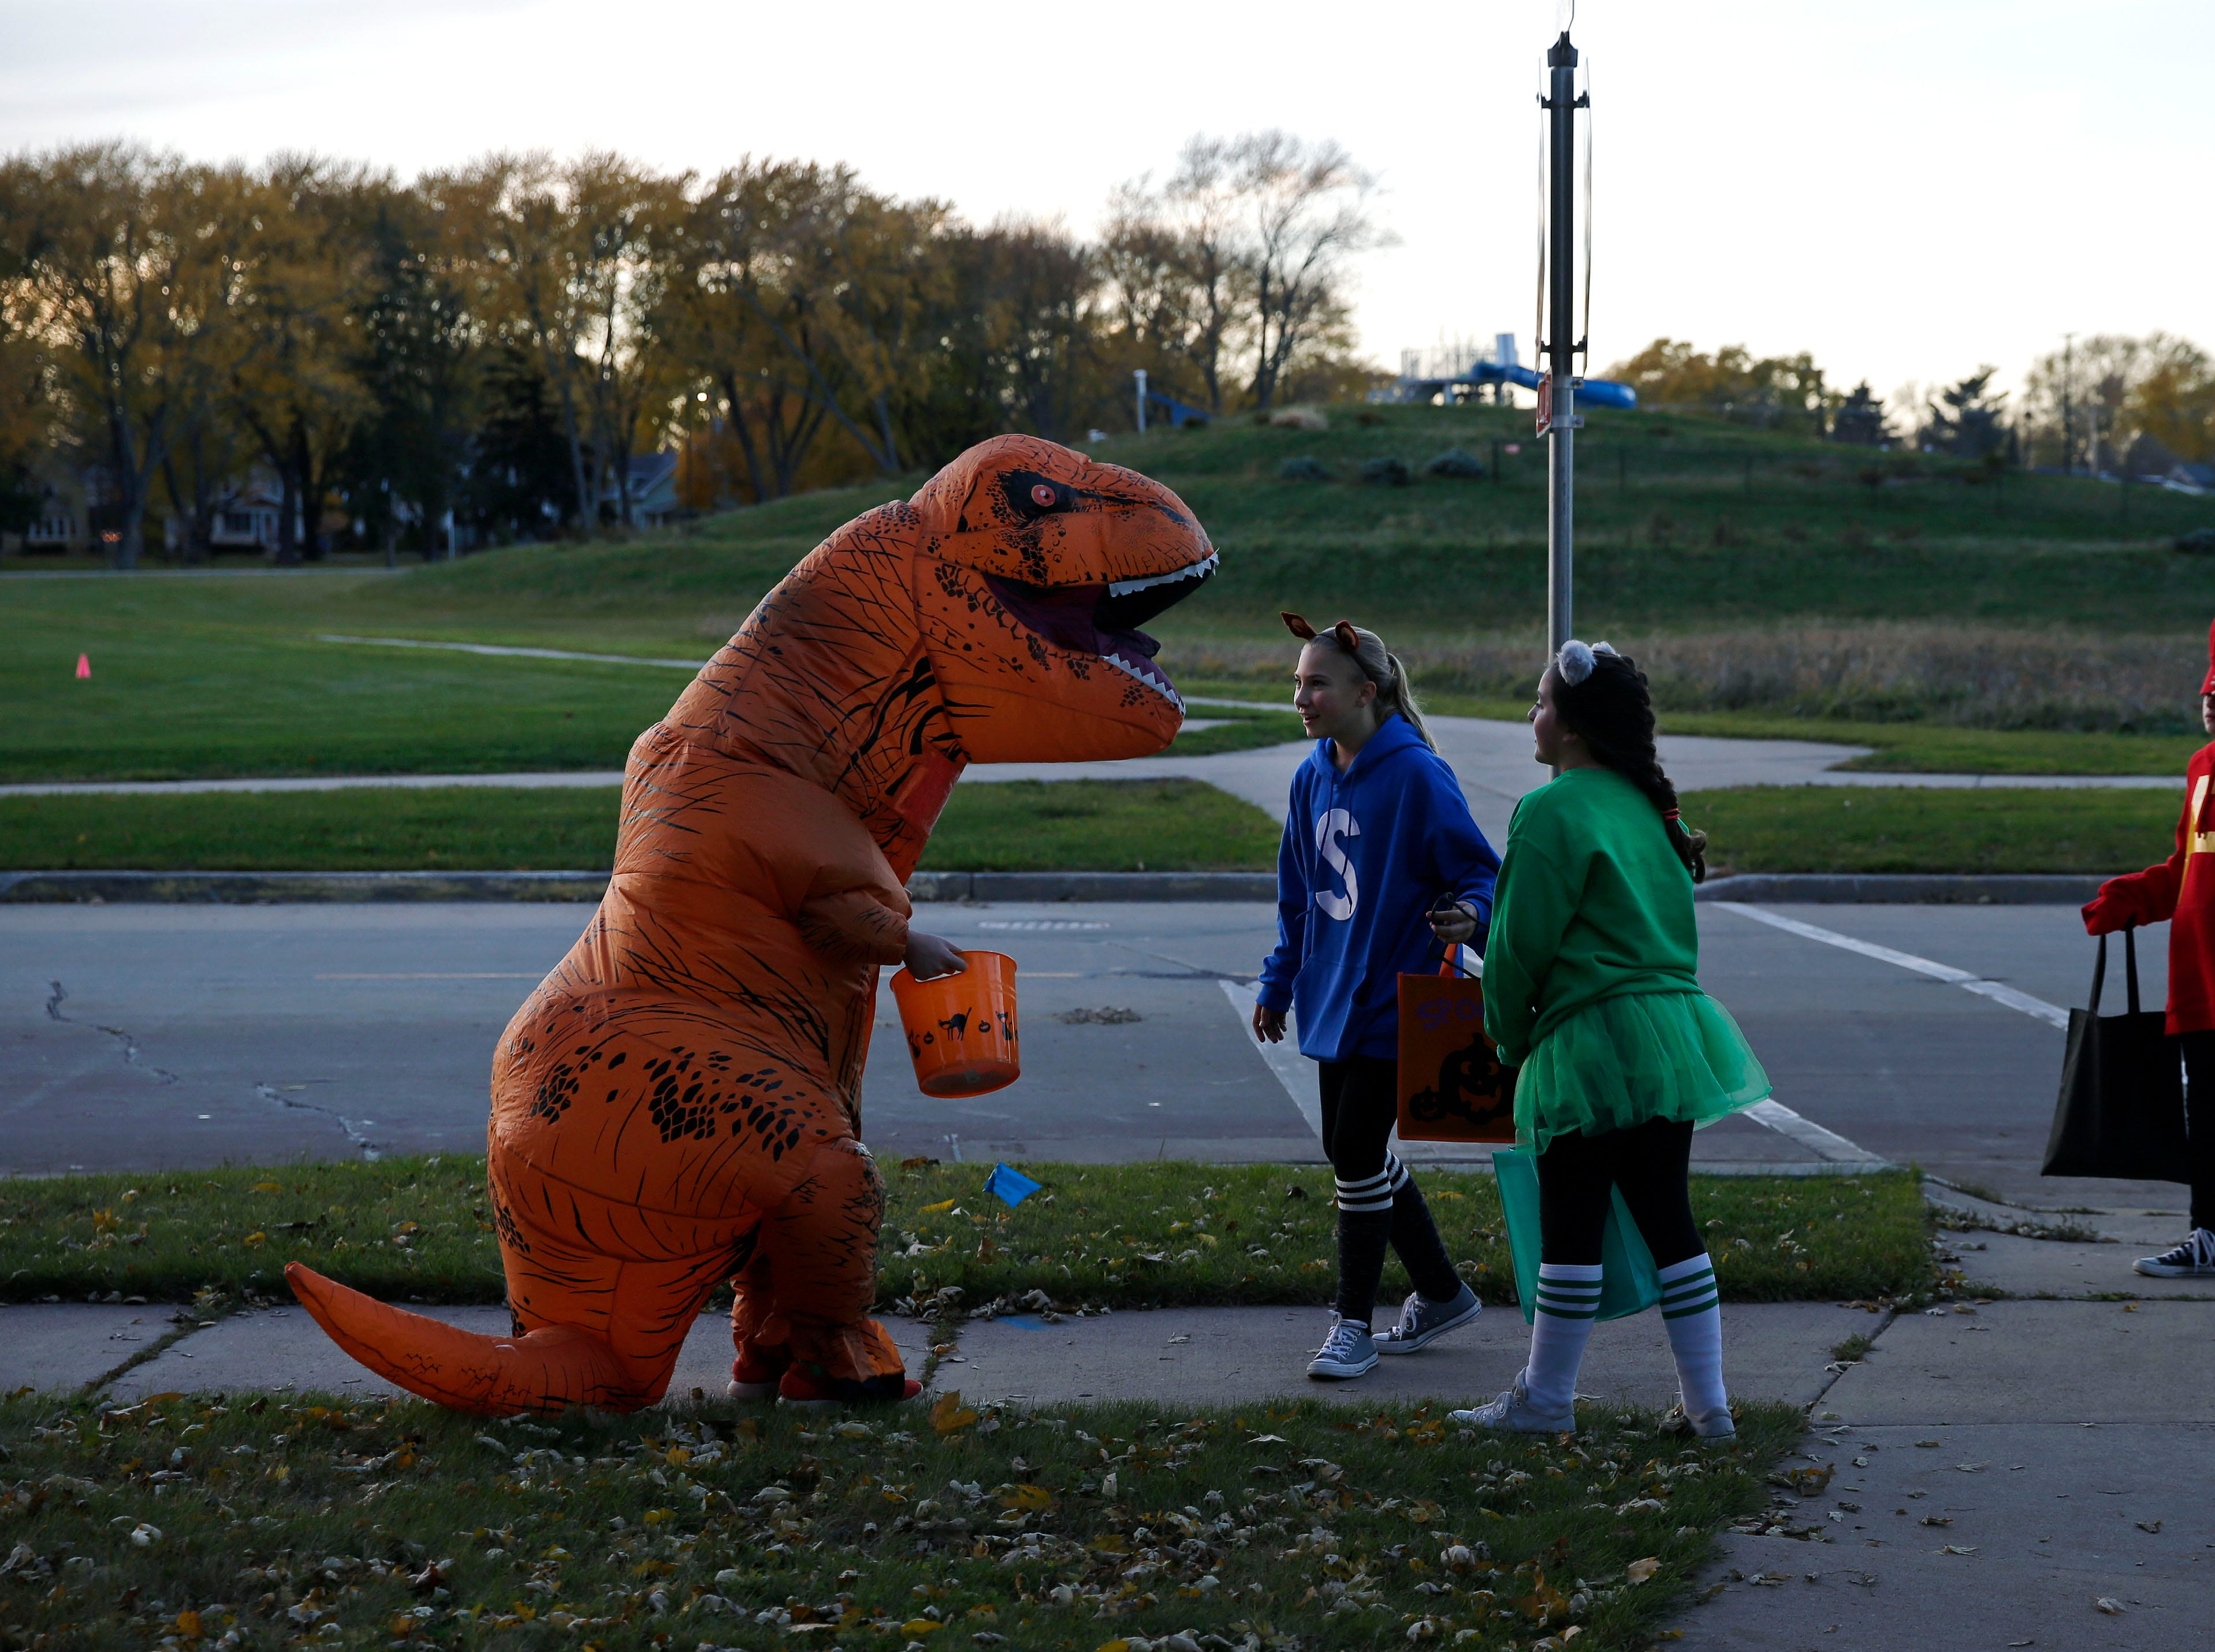 It's Halloween and trick-or-treaters figure out where to go next Wednesday, October 31, 2018, in Appleton, Wis.